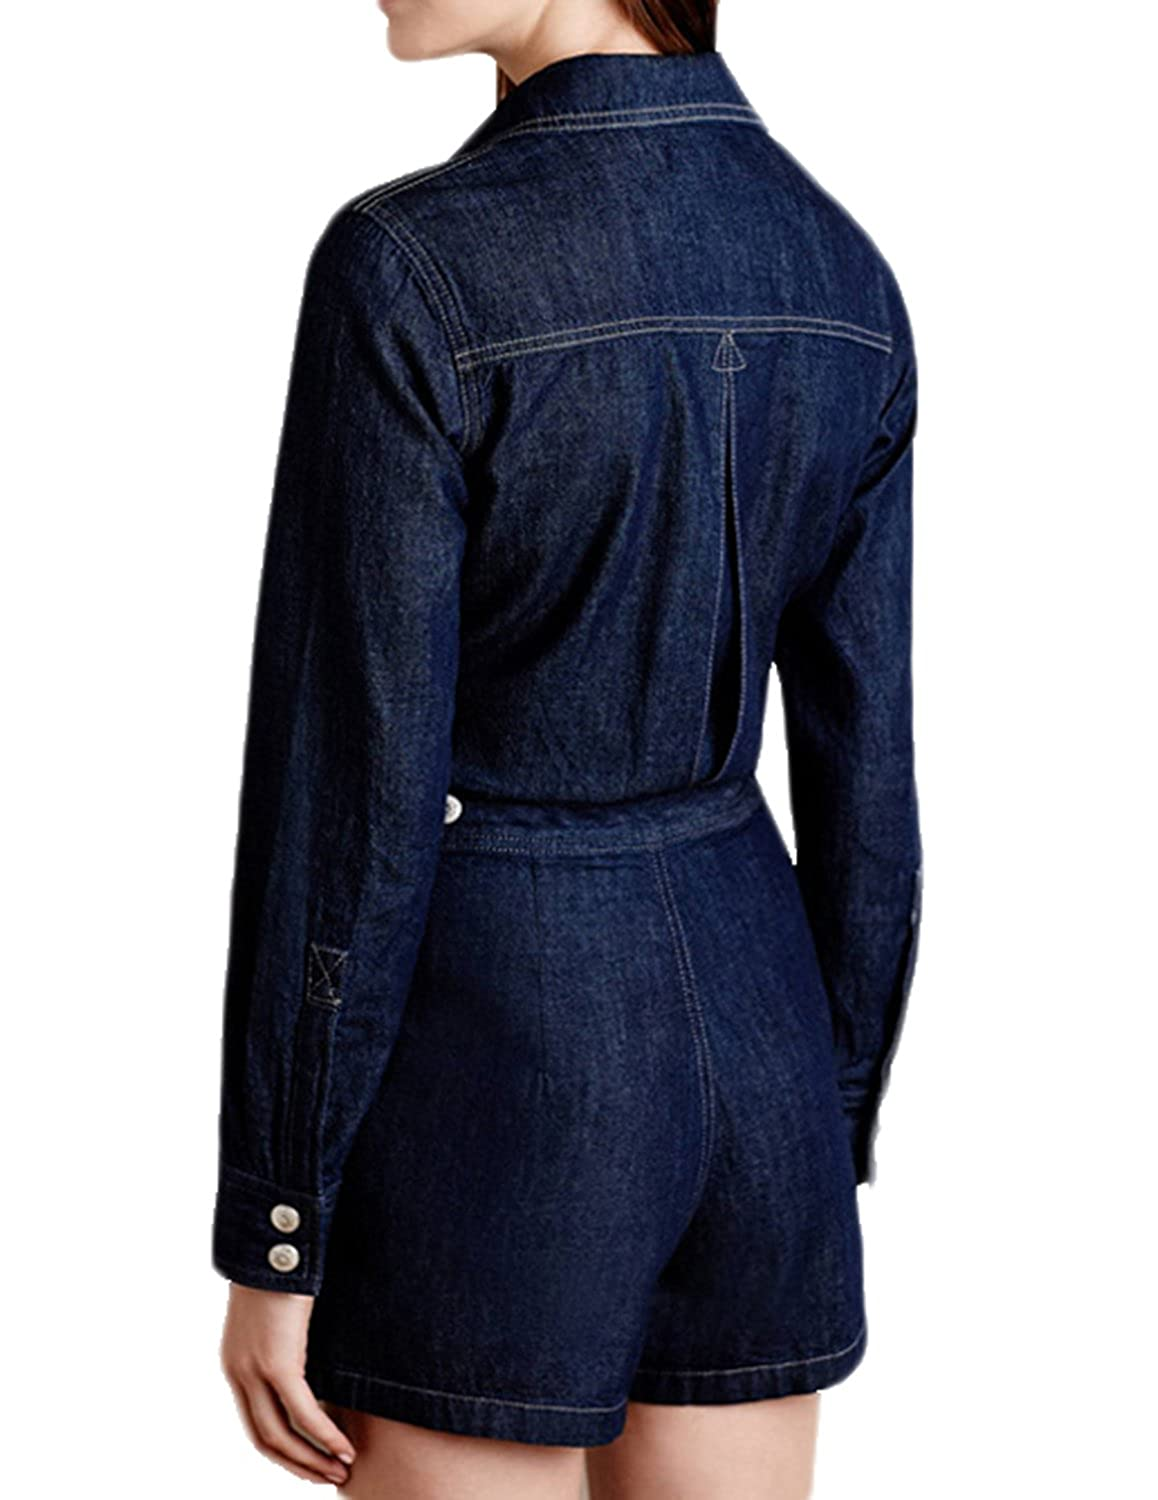 7f11a69b794 Amazon.com  HaoDuoYi Womens Long Sleeve Denim Jeans Jumpsuit Romper With  Pockets  Clothing